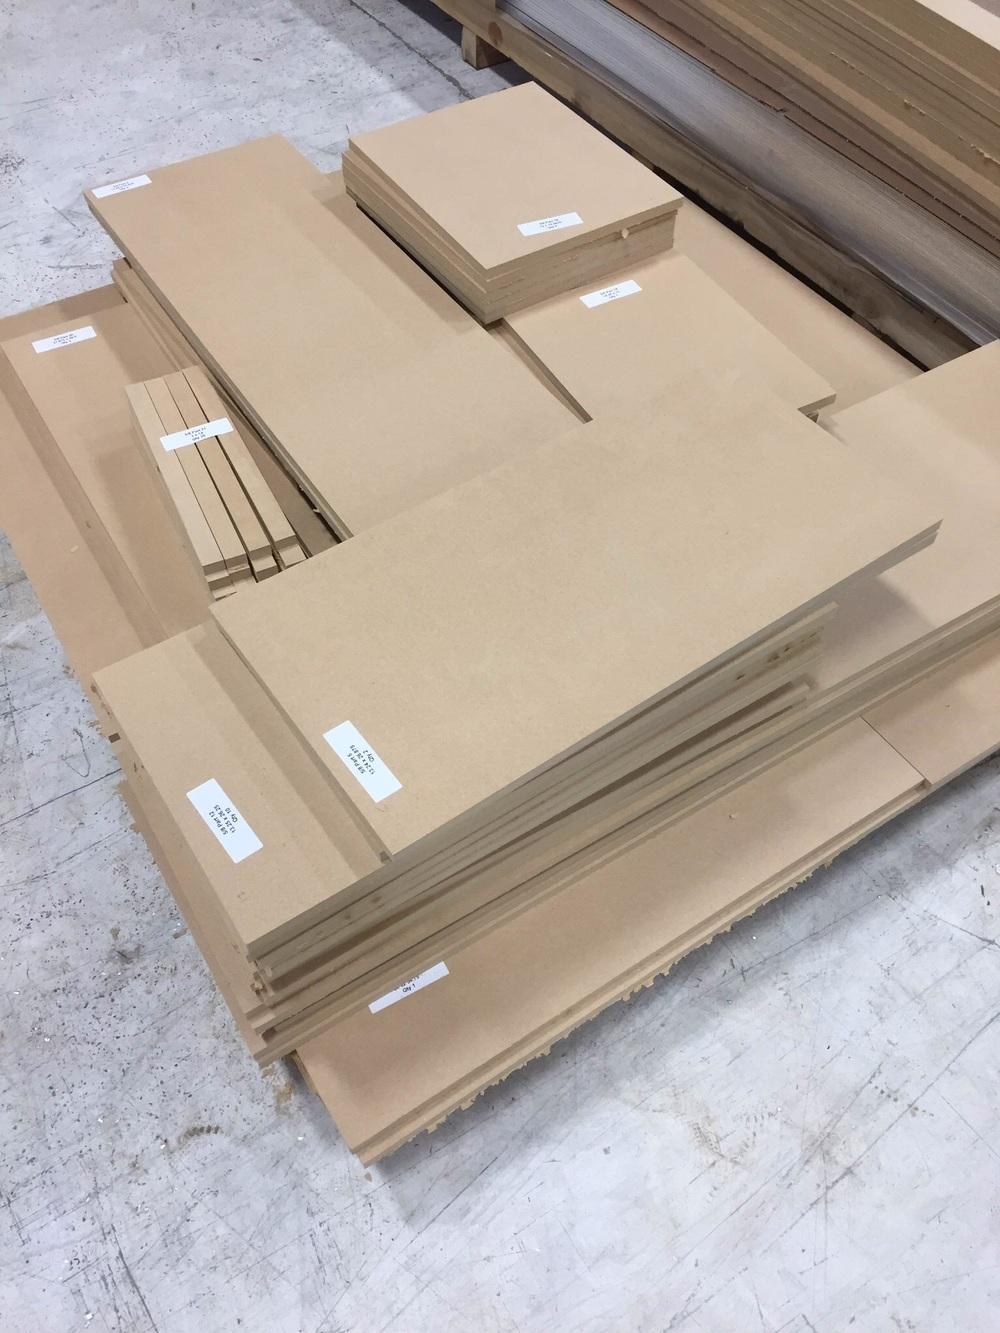 Stacks of consistent and accurate parts on a pallet ready to ship.  Notice each one has a label with the part number, thickness, and dimensions.